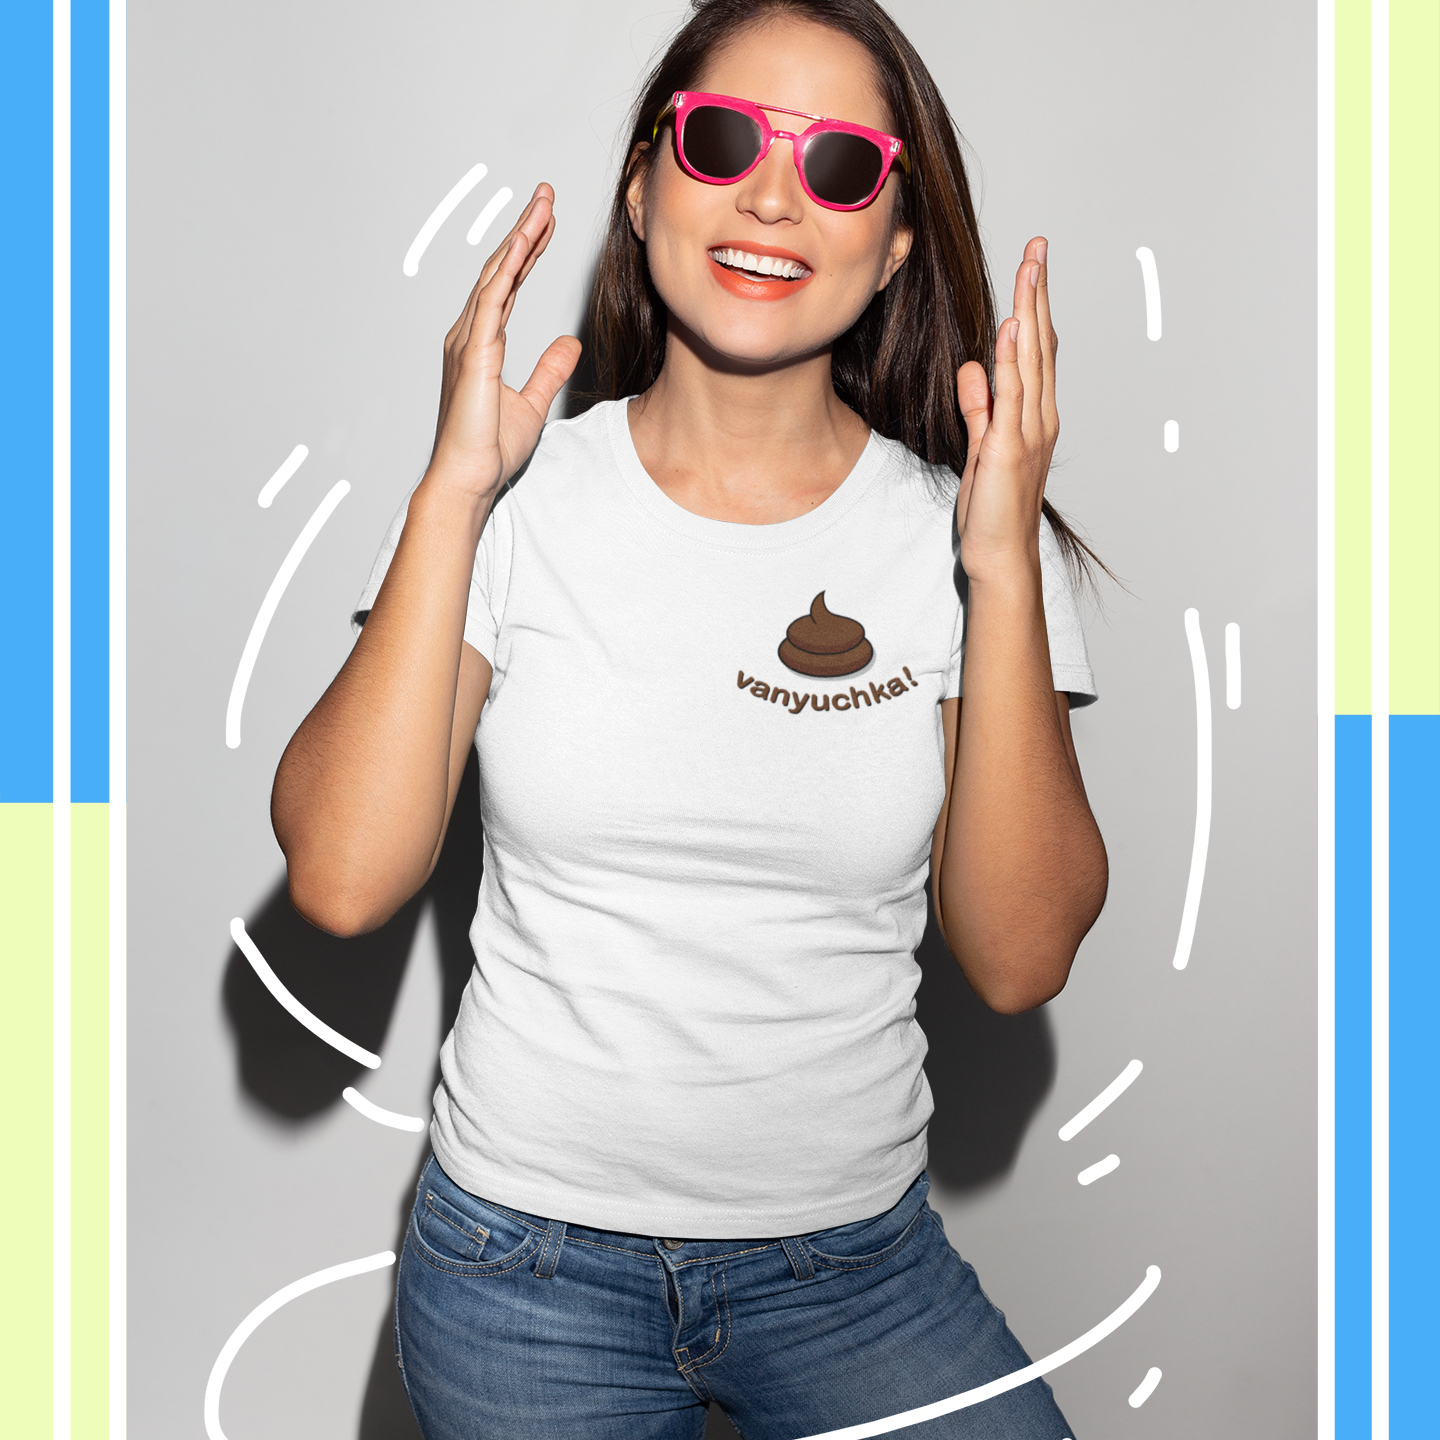 t-shirt-mockup-featuring-a-smiling-girl-with-sunglasses-18656.png